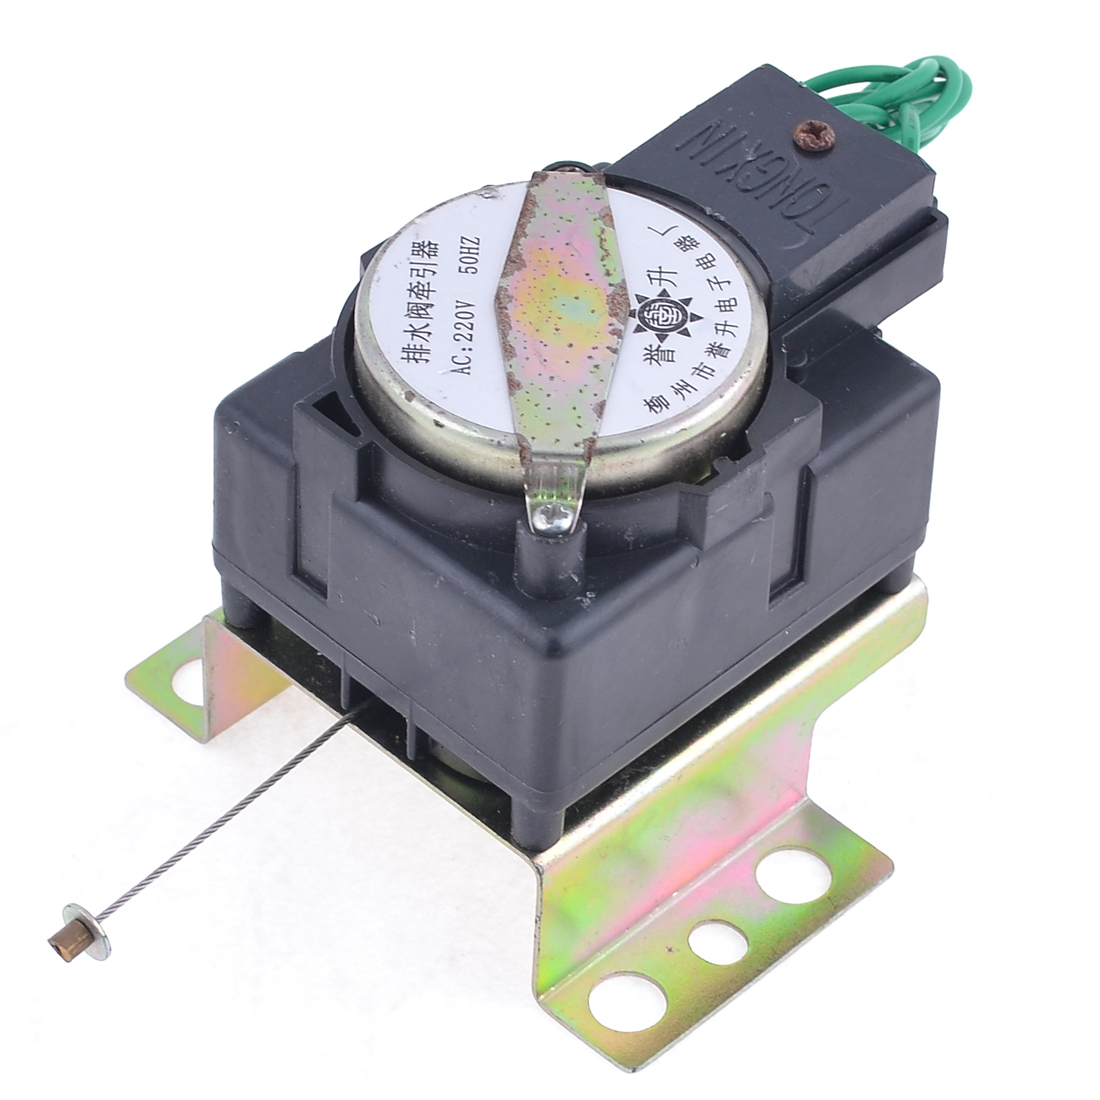 AC 220V 50Hz Plastic Case Drain Motor Tractor for Sumsung Washing Machine